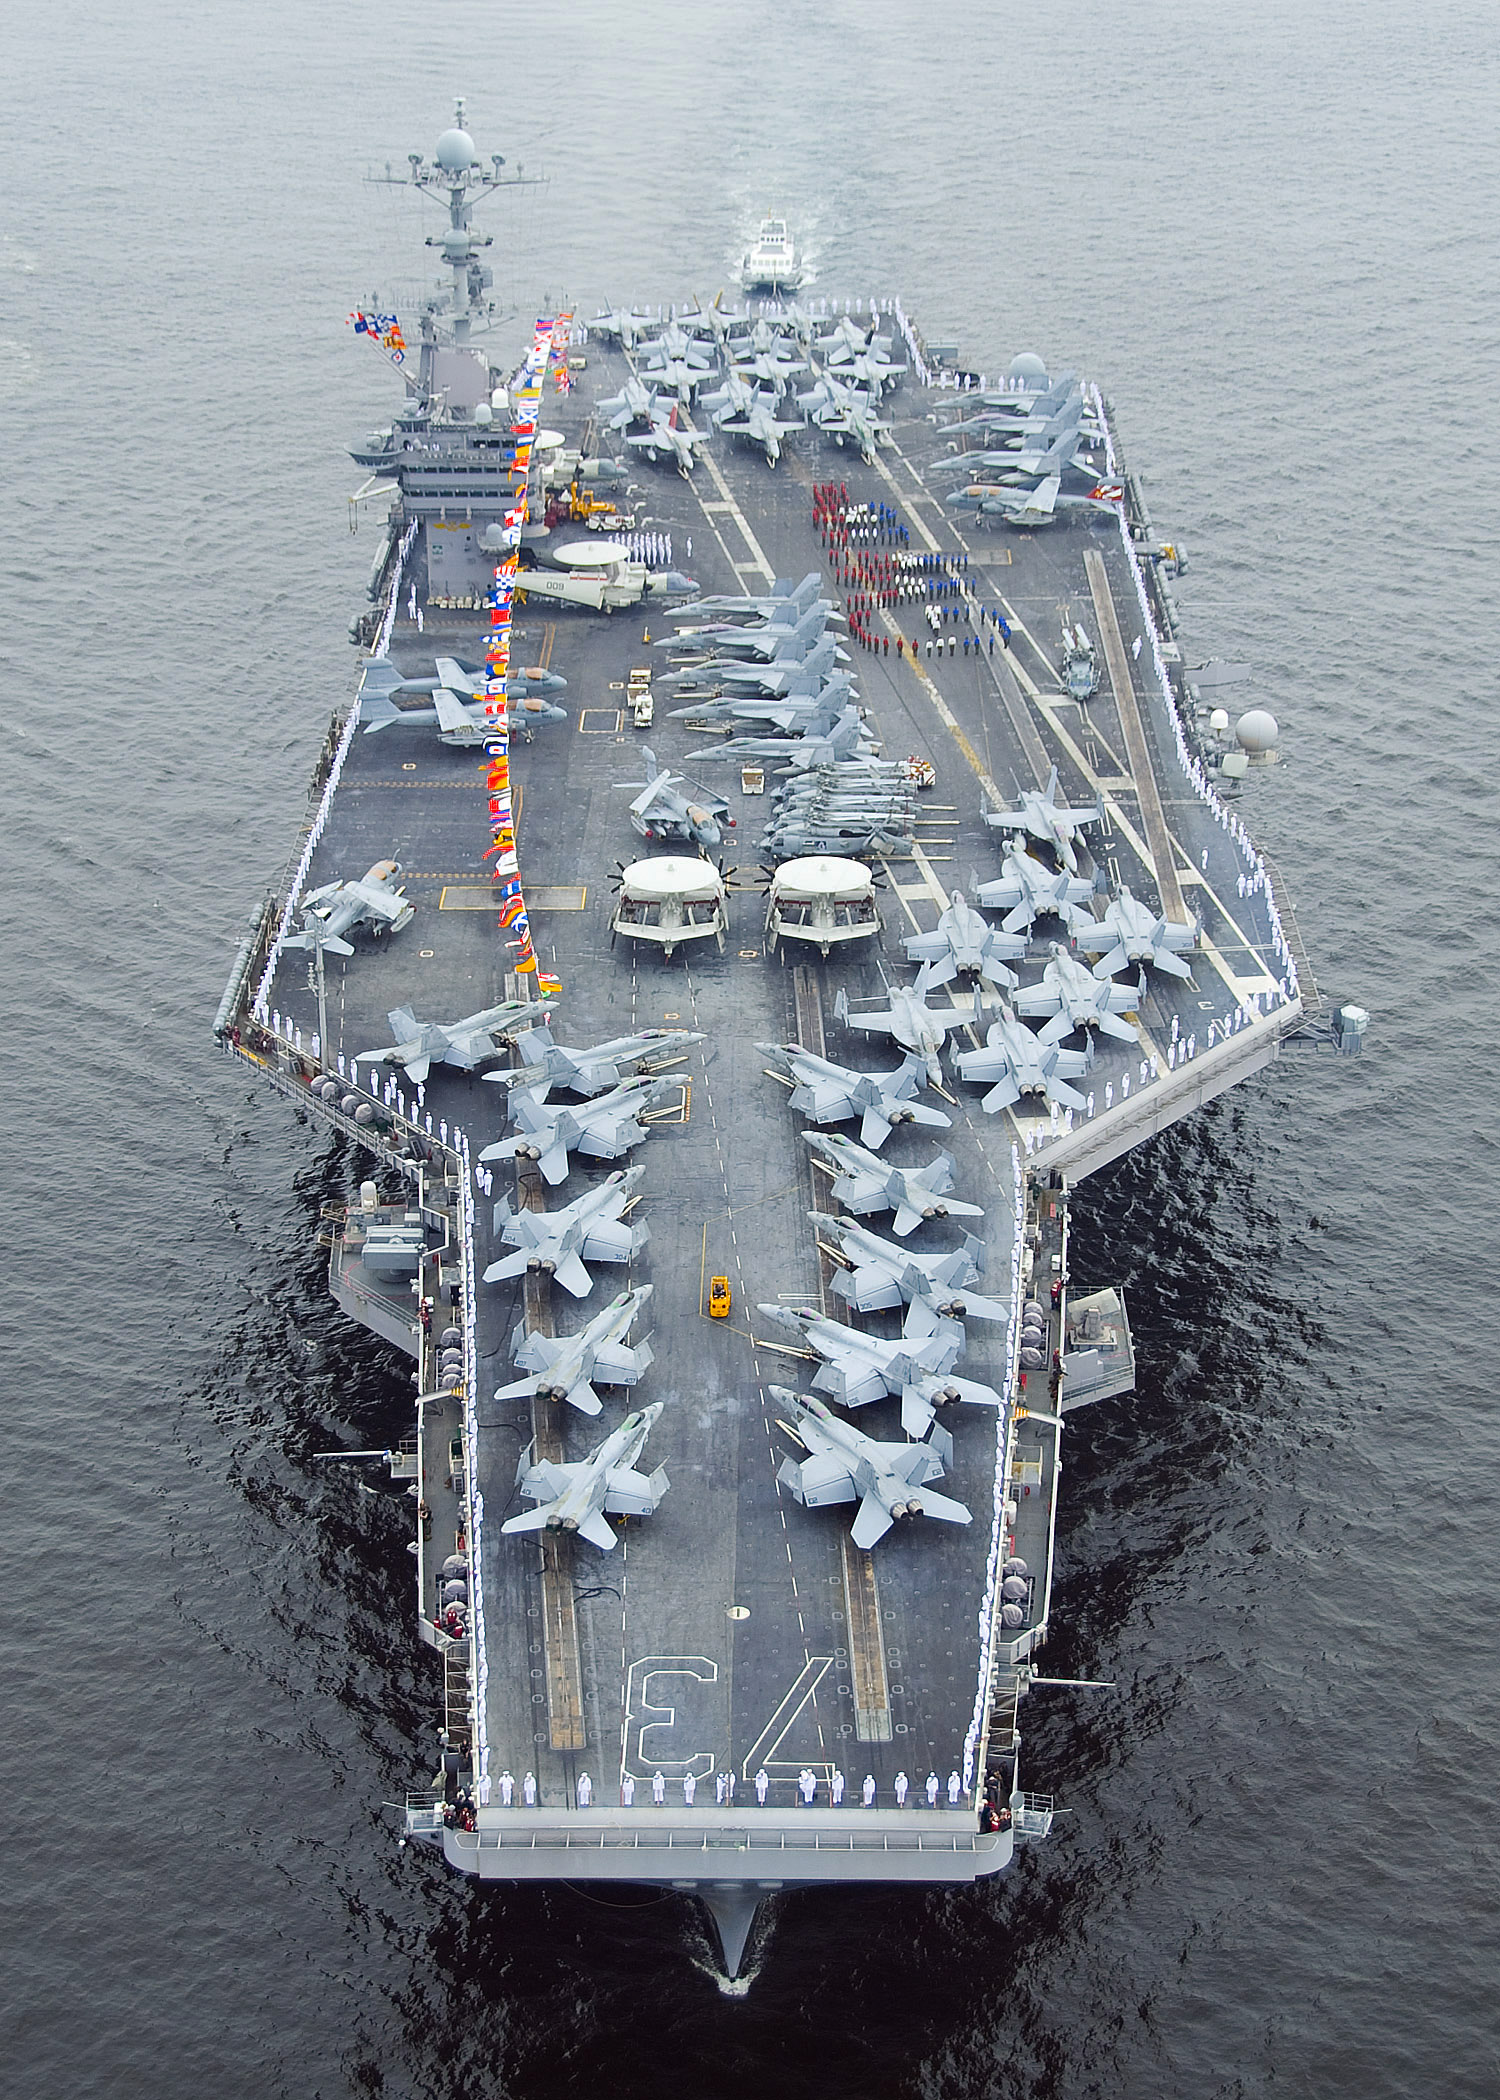 Aircraft carrier uss george washington cvn 73 spell out george